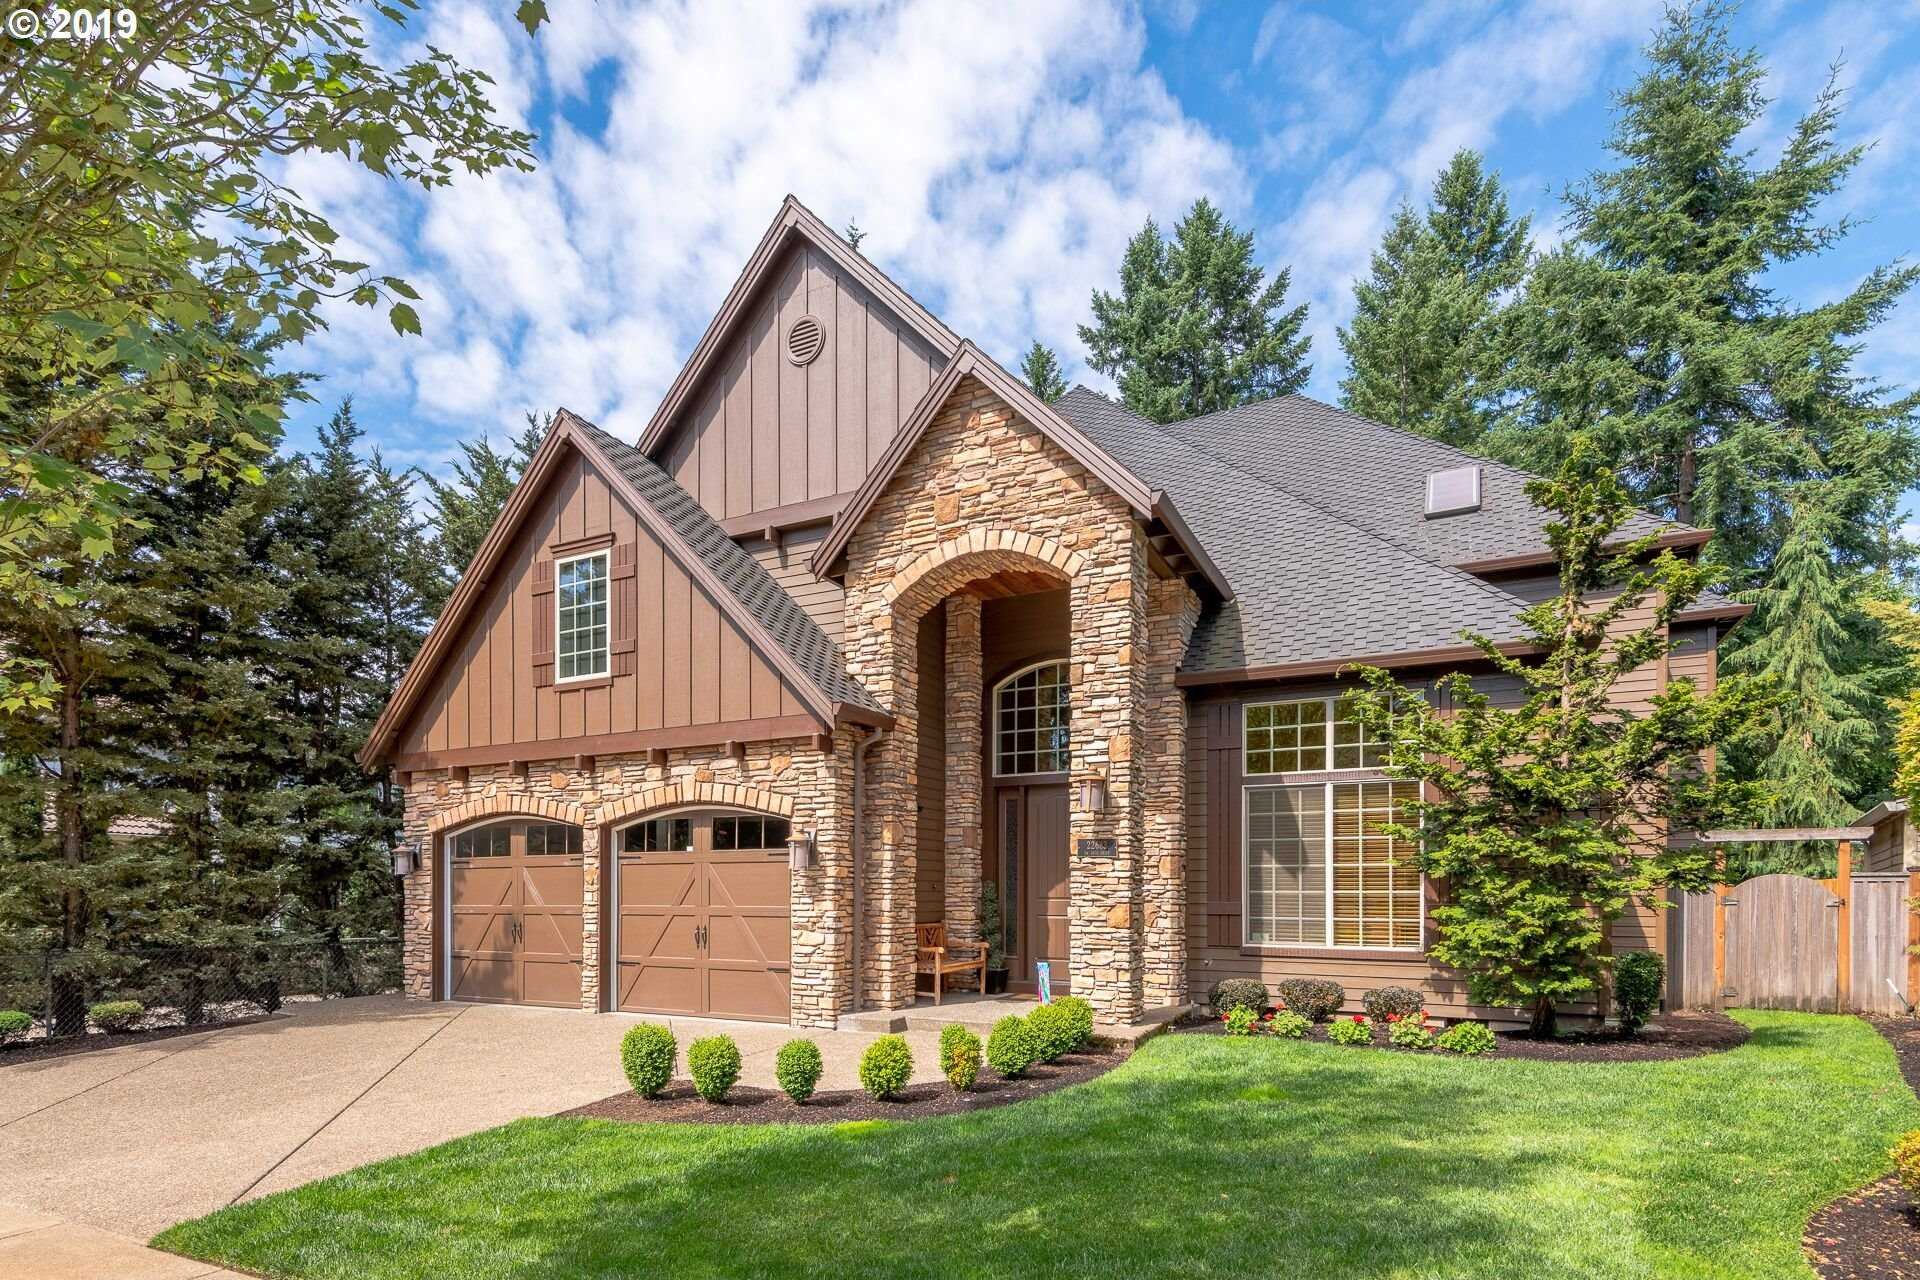 $810,000 - 4Br/3Ba -  for Sale in Victoria Woods, Tualatin